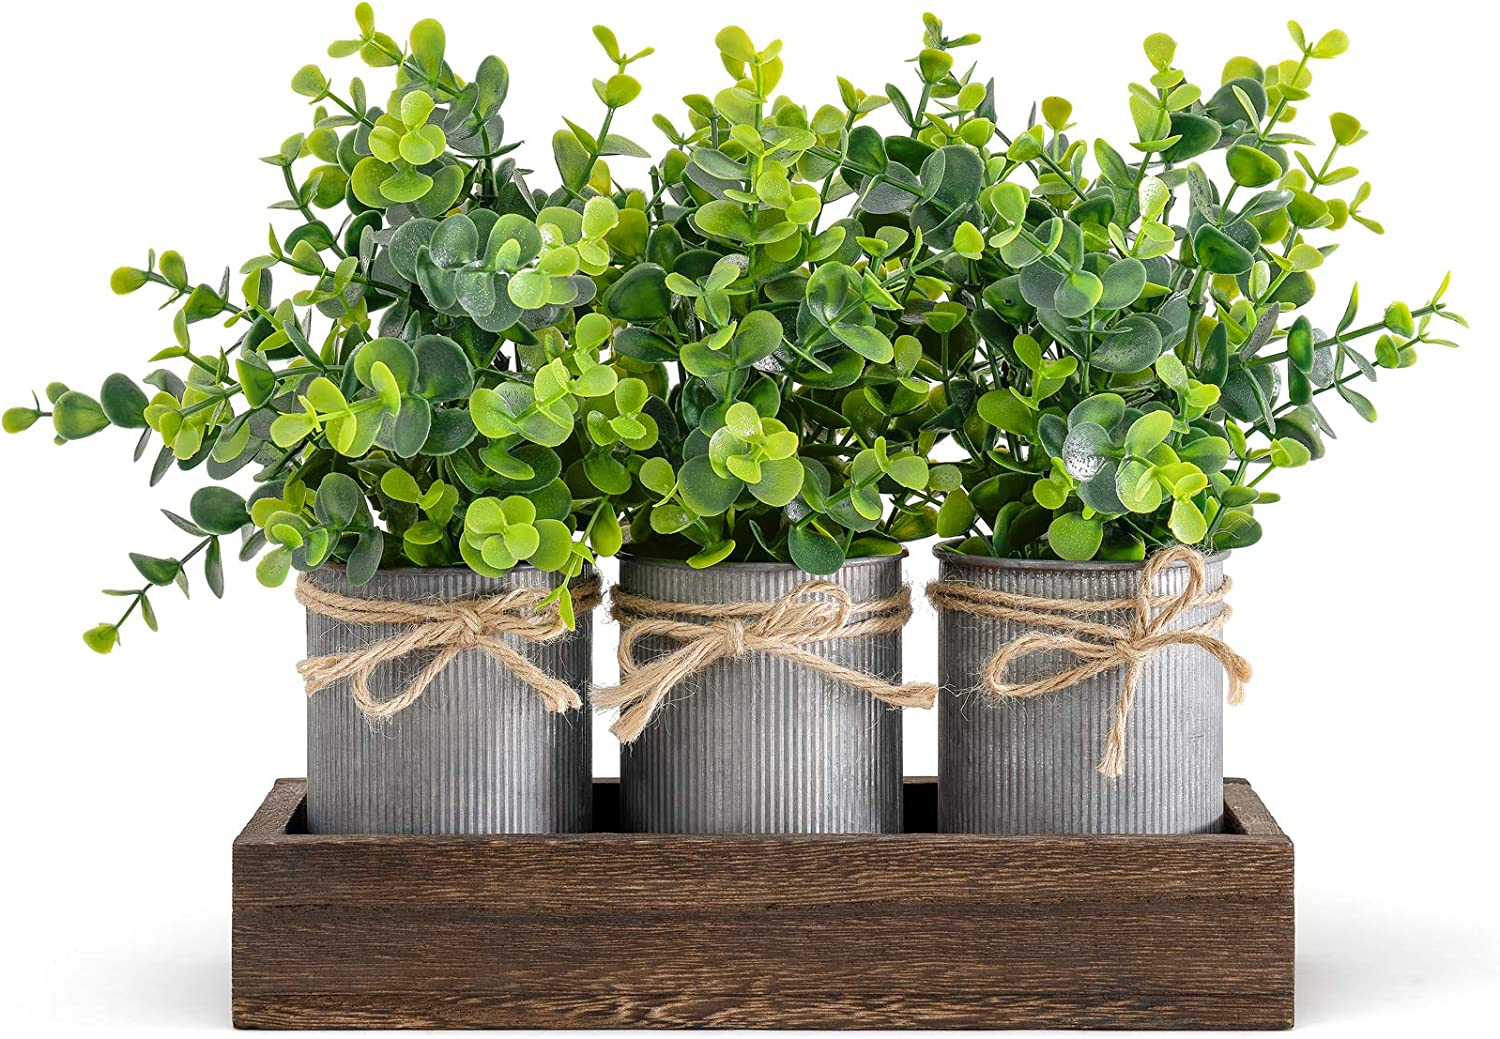 Dahey Decorative Galvanized Metal Pots Centerpiece Decor Wood Tray with Artificial Flowers, 3 Buckets with Eucalyptus, Rustic Farmhouse Home Decor for Coffee Table Dining Room Living Room Kitchen Bath, Brown